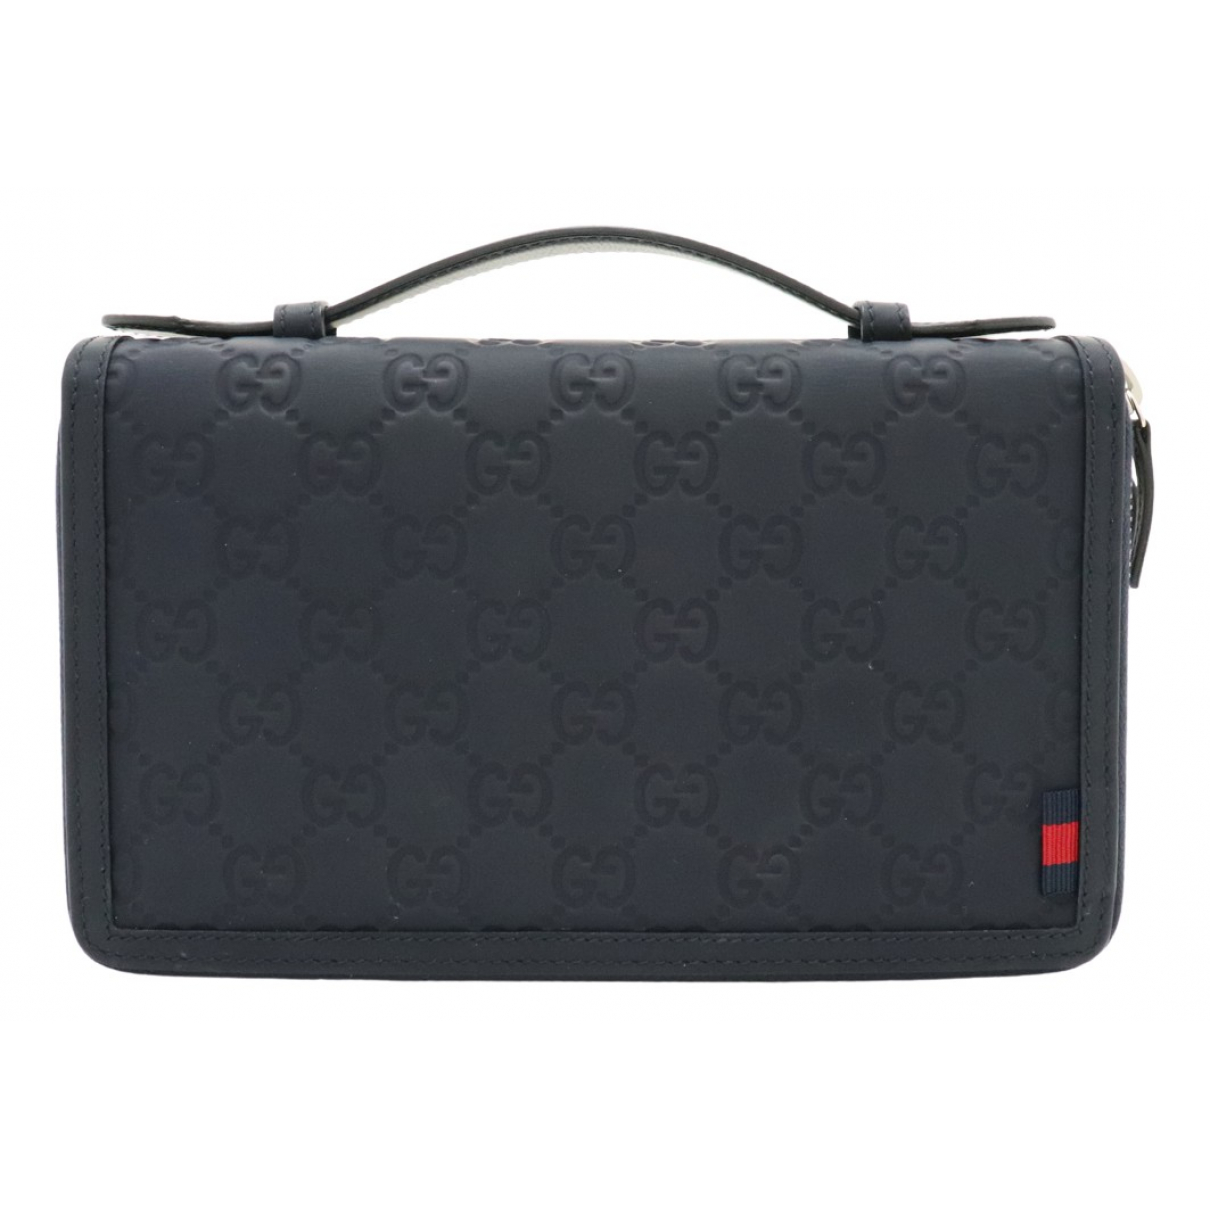 Gucci N Navy Leather Purses, wallet & cases for Women N